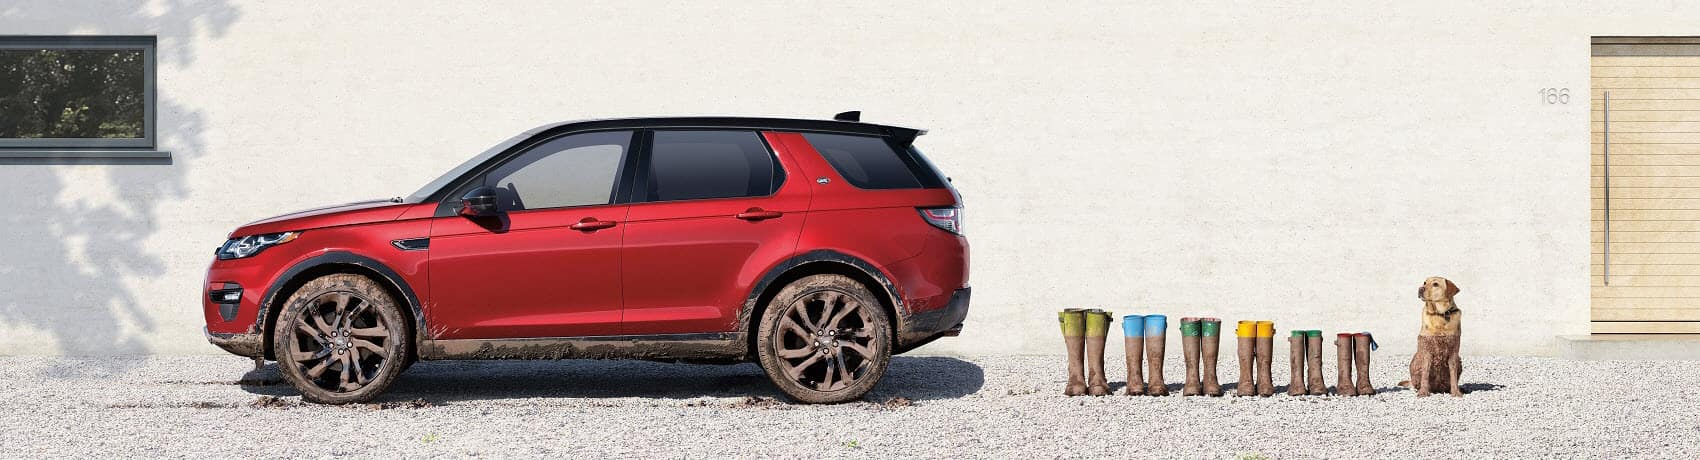 Land Rover Discovery Sport Leasing